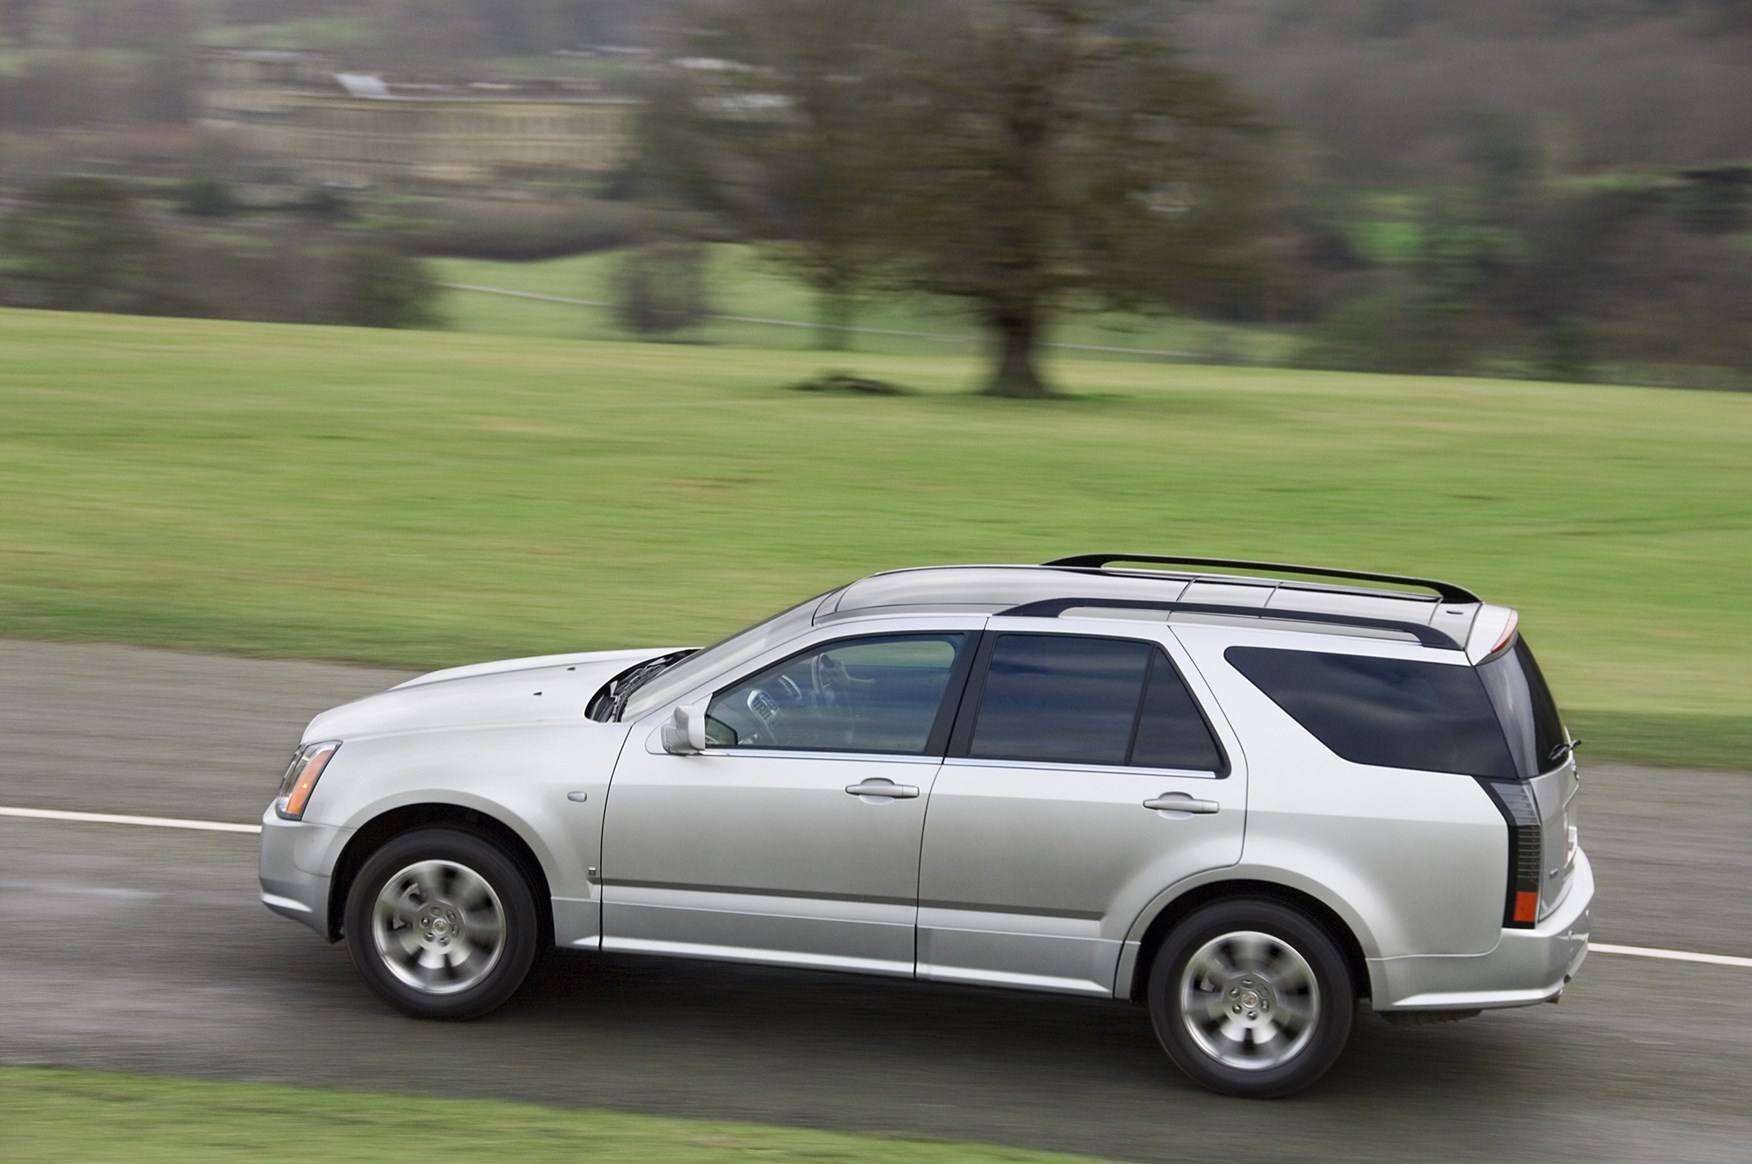 cadillac srx station wagon review 2007 2008 parkers. Black Bedroom Furniture Sets. Home Design Ideas